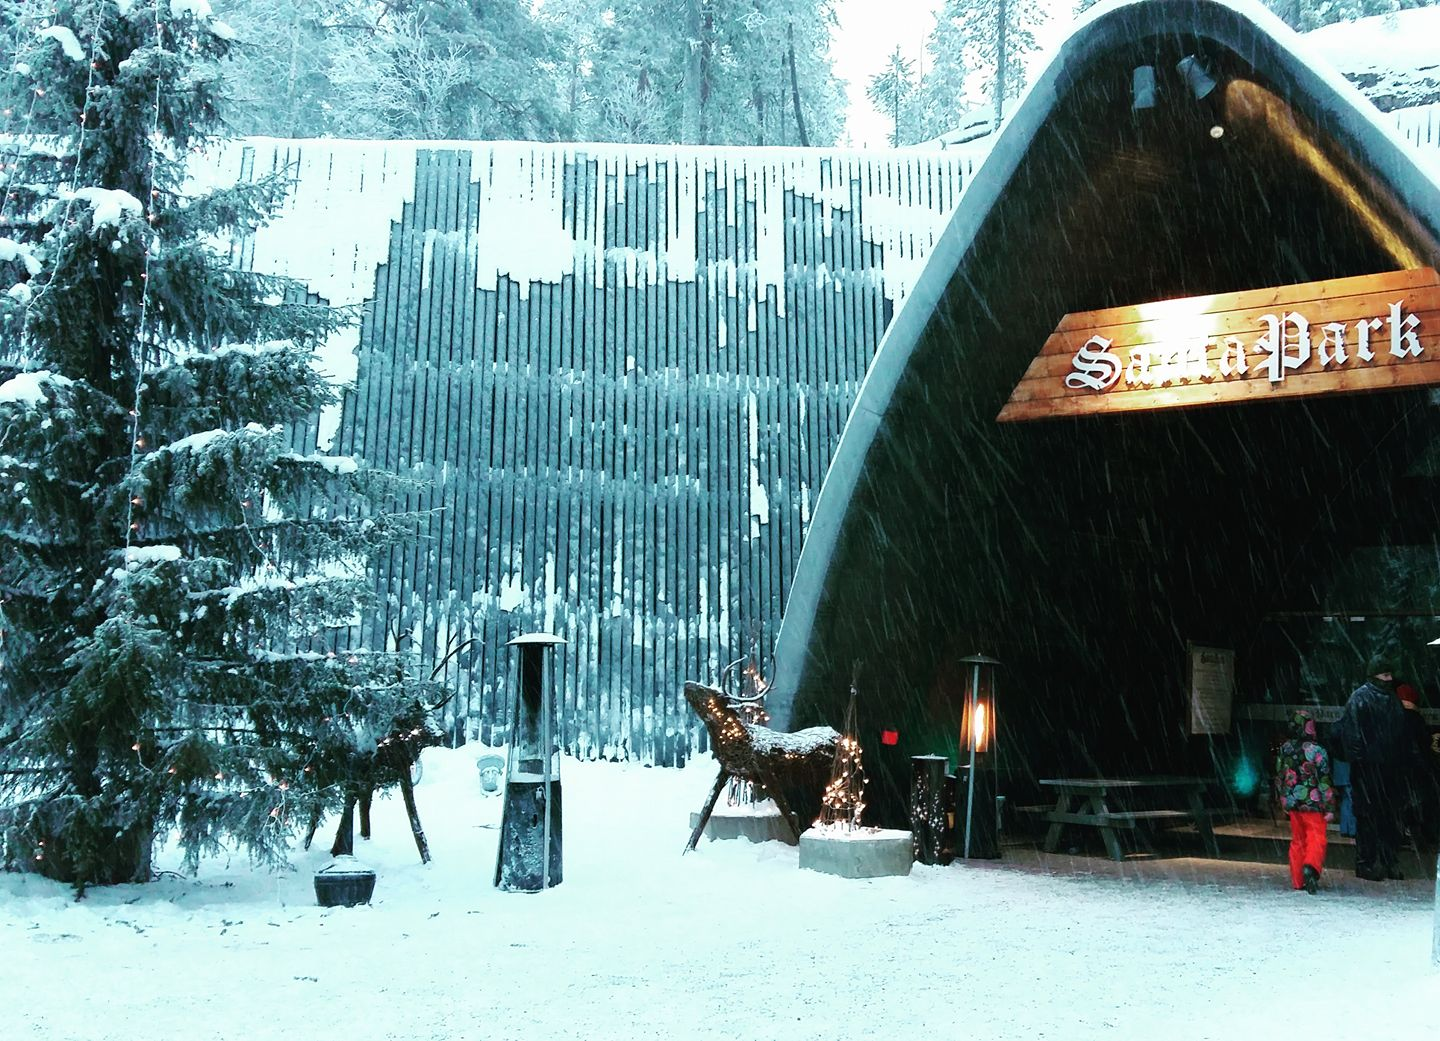 Cherrysue doin the do how to do lapland on a budget make it last week i shared our experience at santa claus village this week ill tell you how we got on at santapark when we took up their invitation to come visit solutioingenieria Choice Image